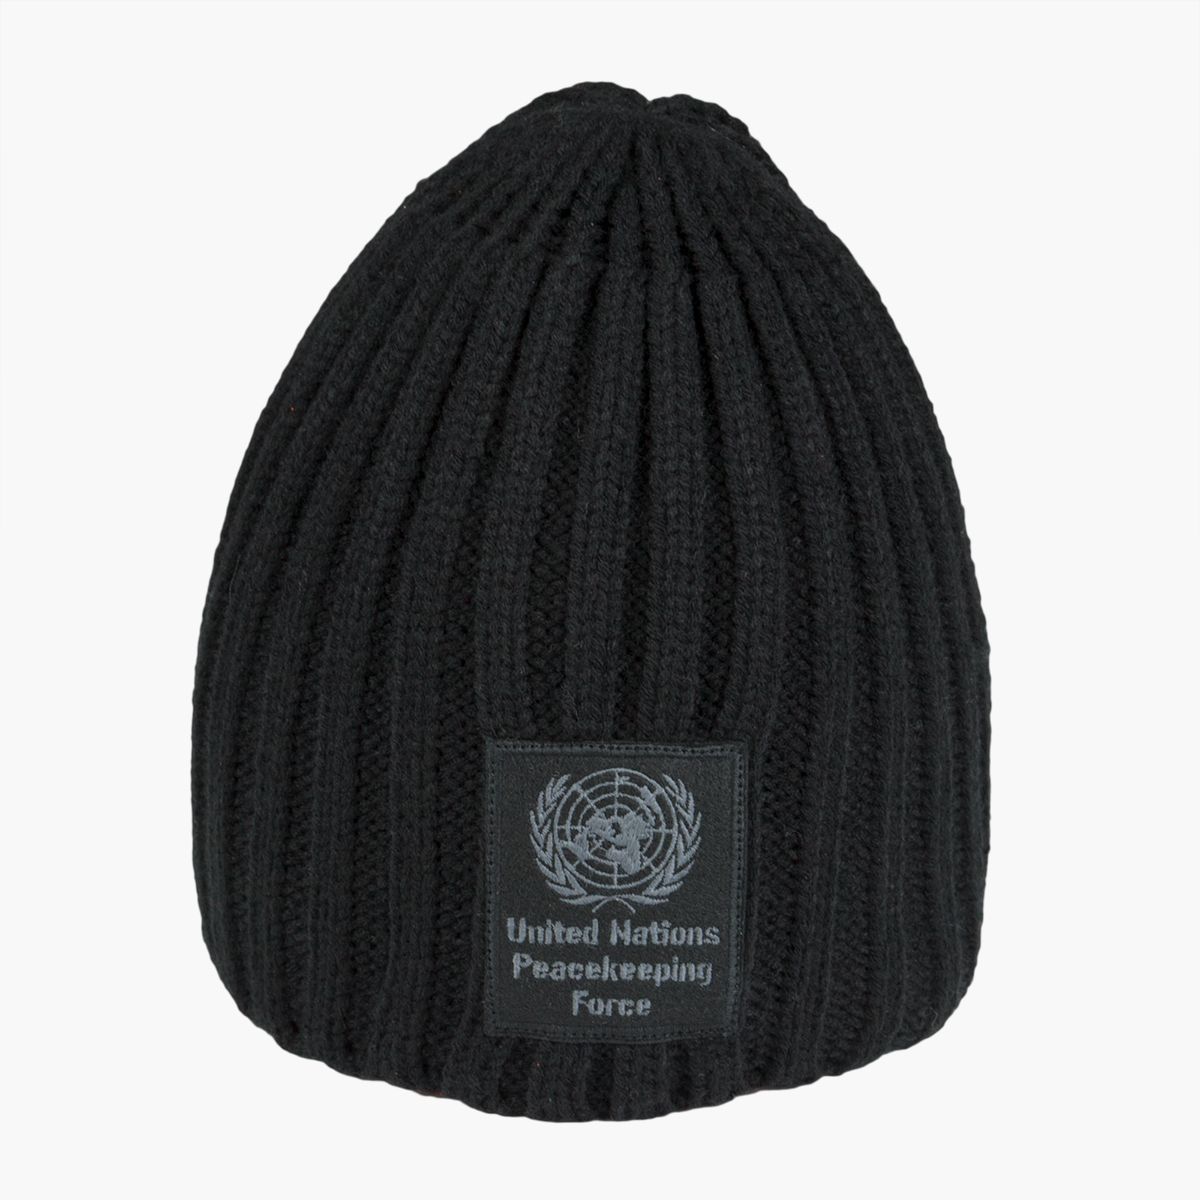 "#Hat - Black - #Peacekeeper - Soft hat with ribbed tricot with patch dedicated to ""United Nations Peacekeeping Force""."